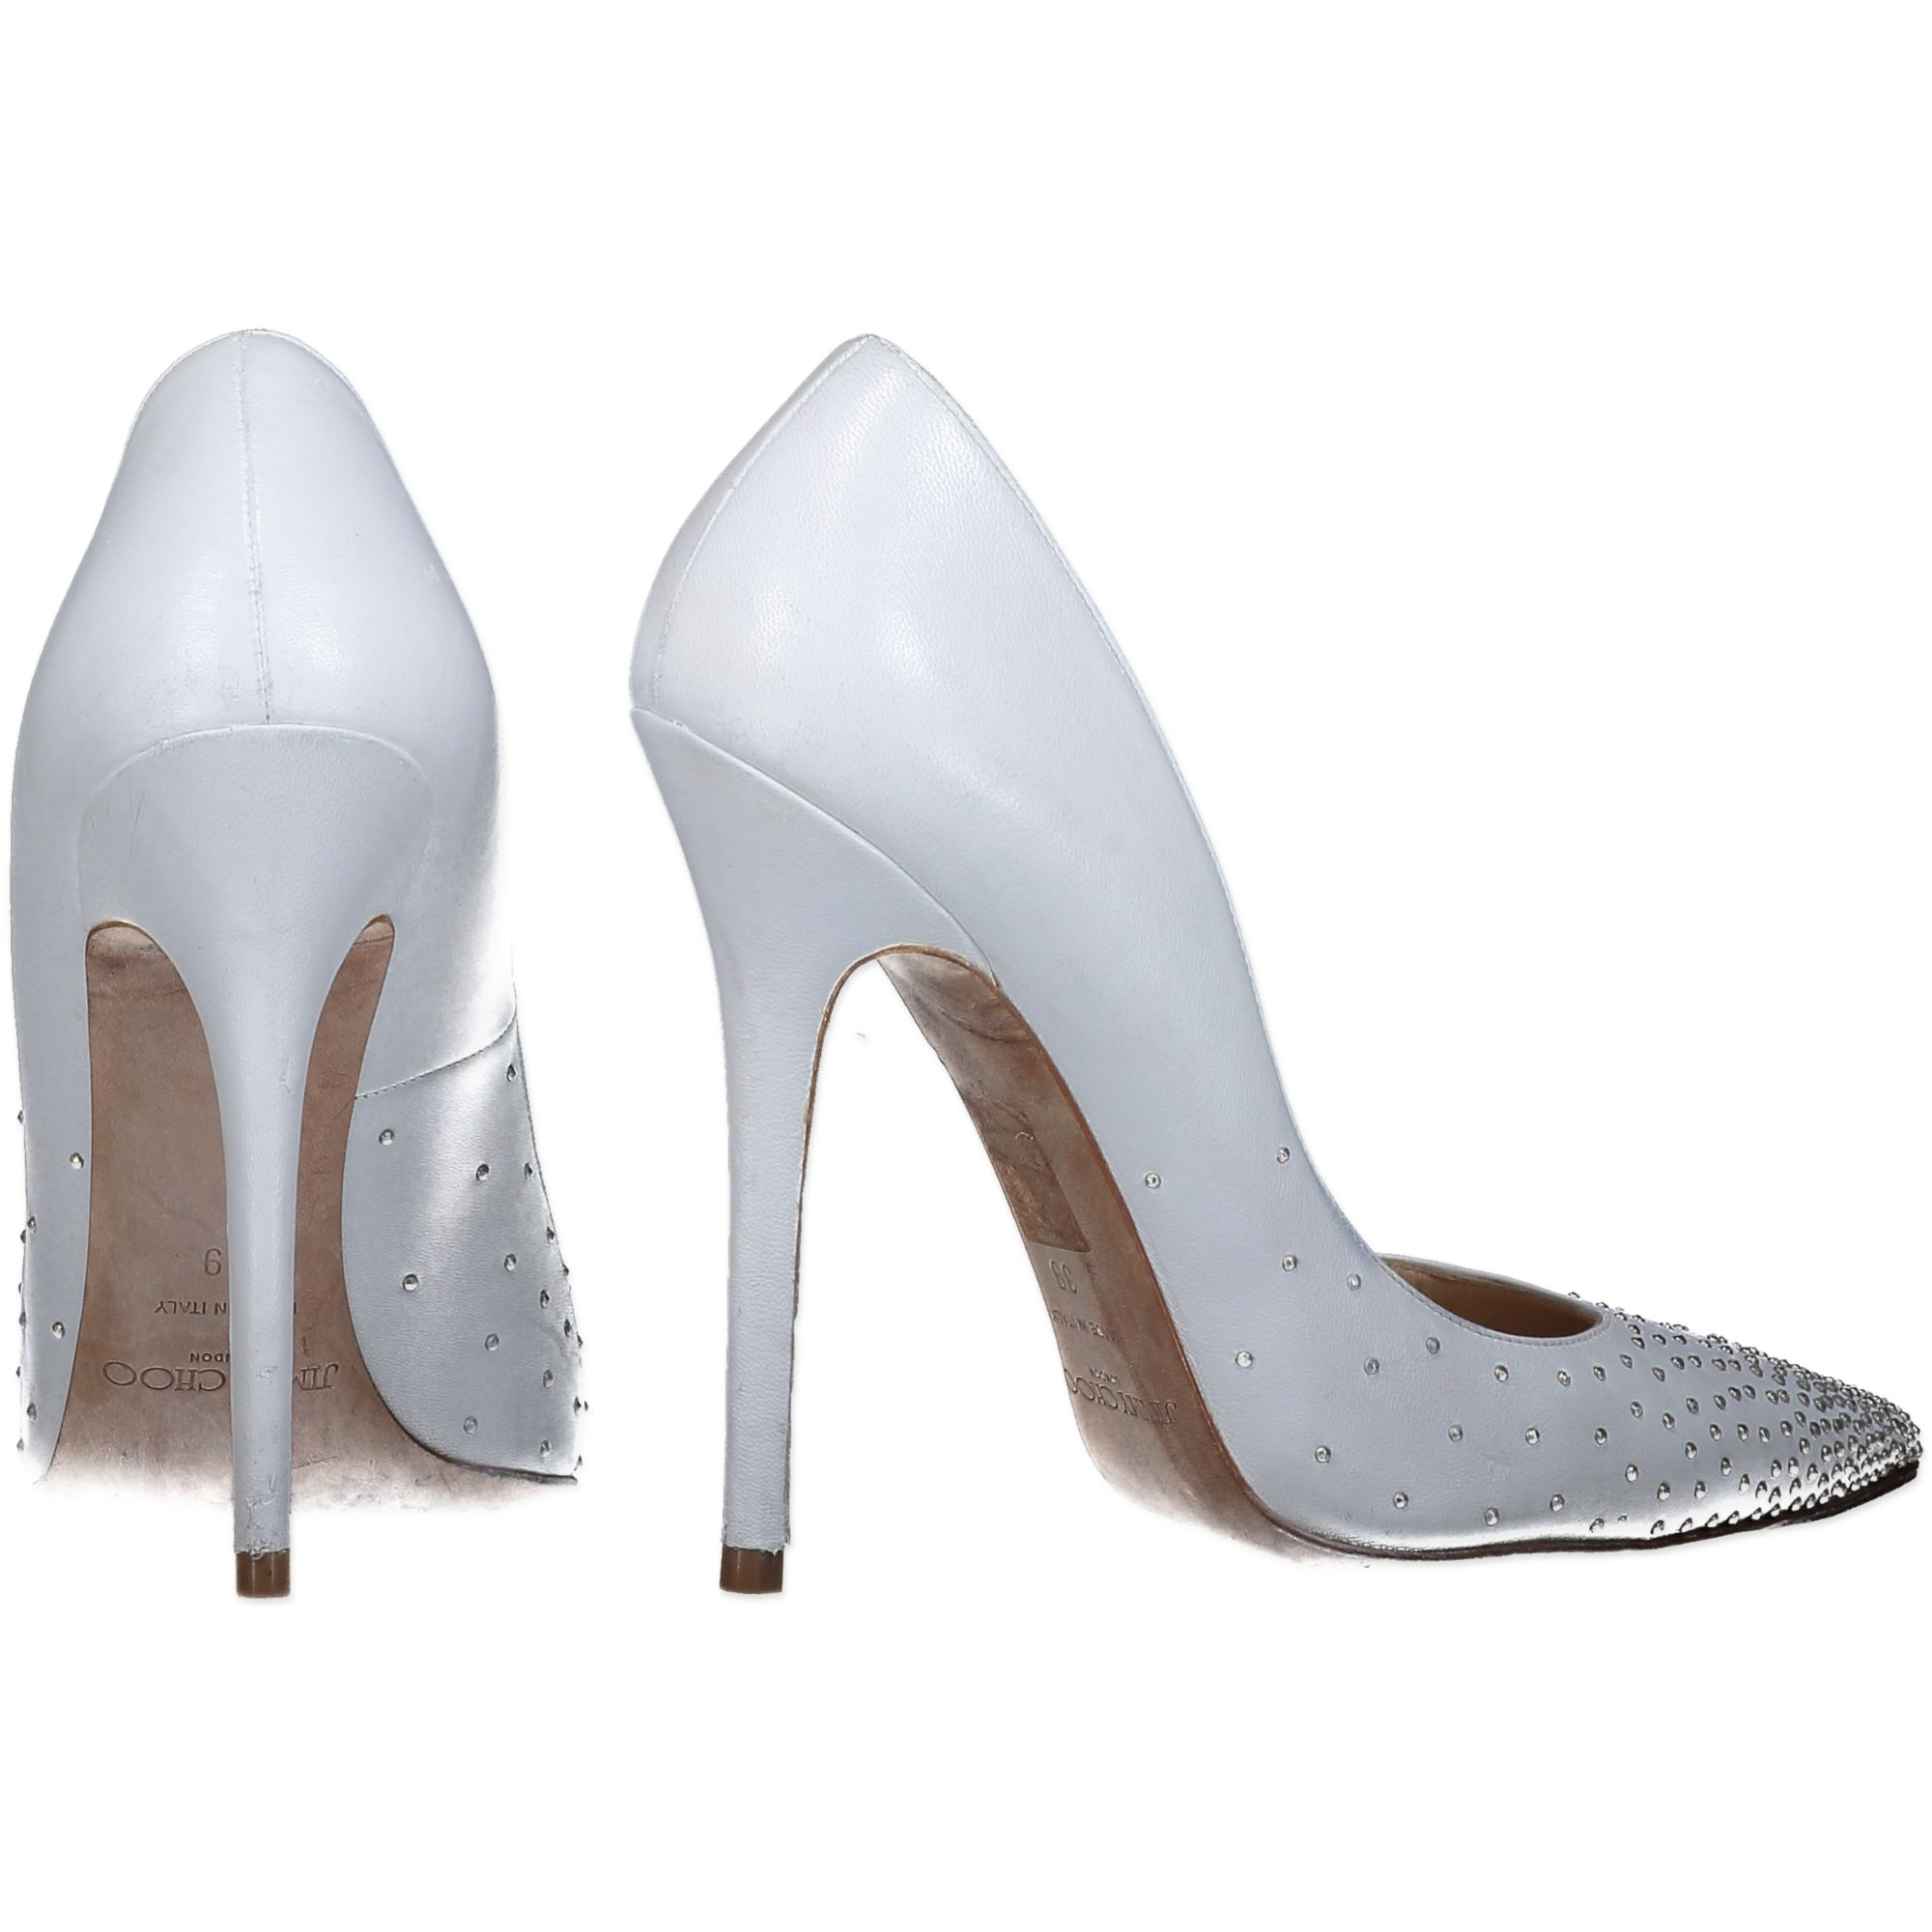 Jimmy Choo Anouk Heels White Nappa Leather Silver Studs - SIZE 39